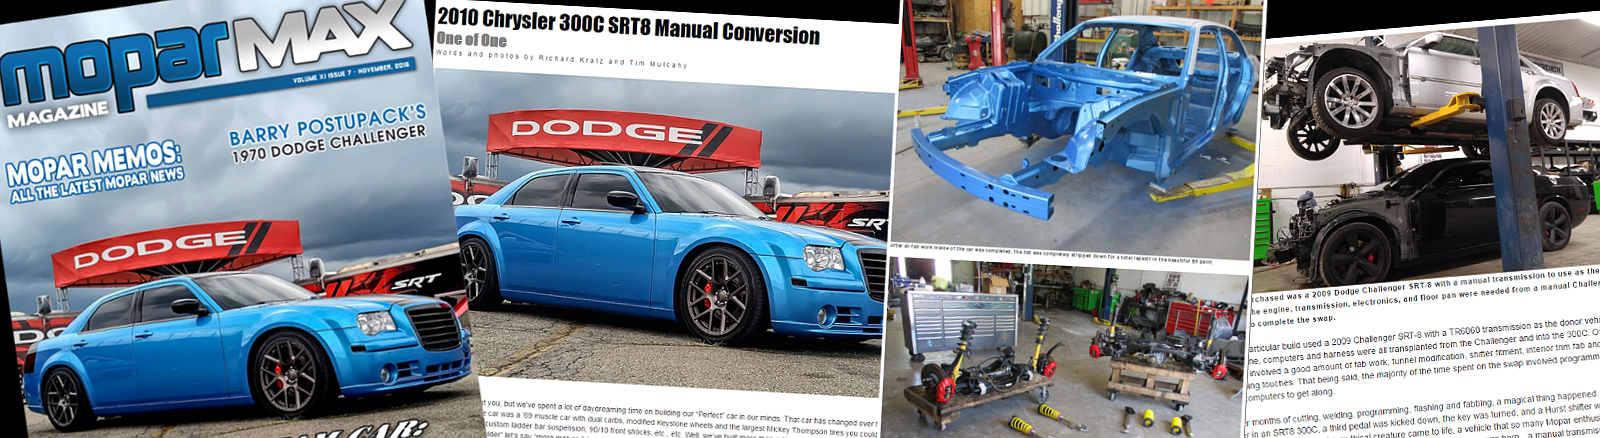 2010 Chrysler 300C Manual Trans Conversion